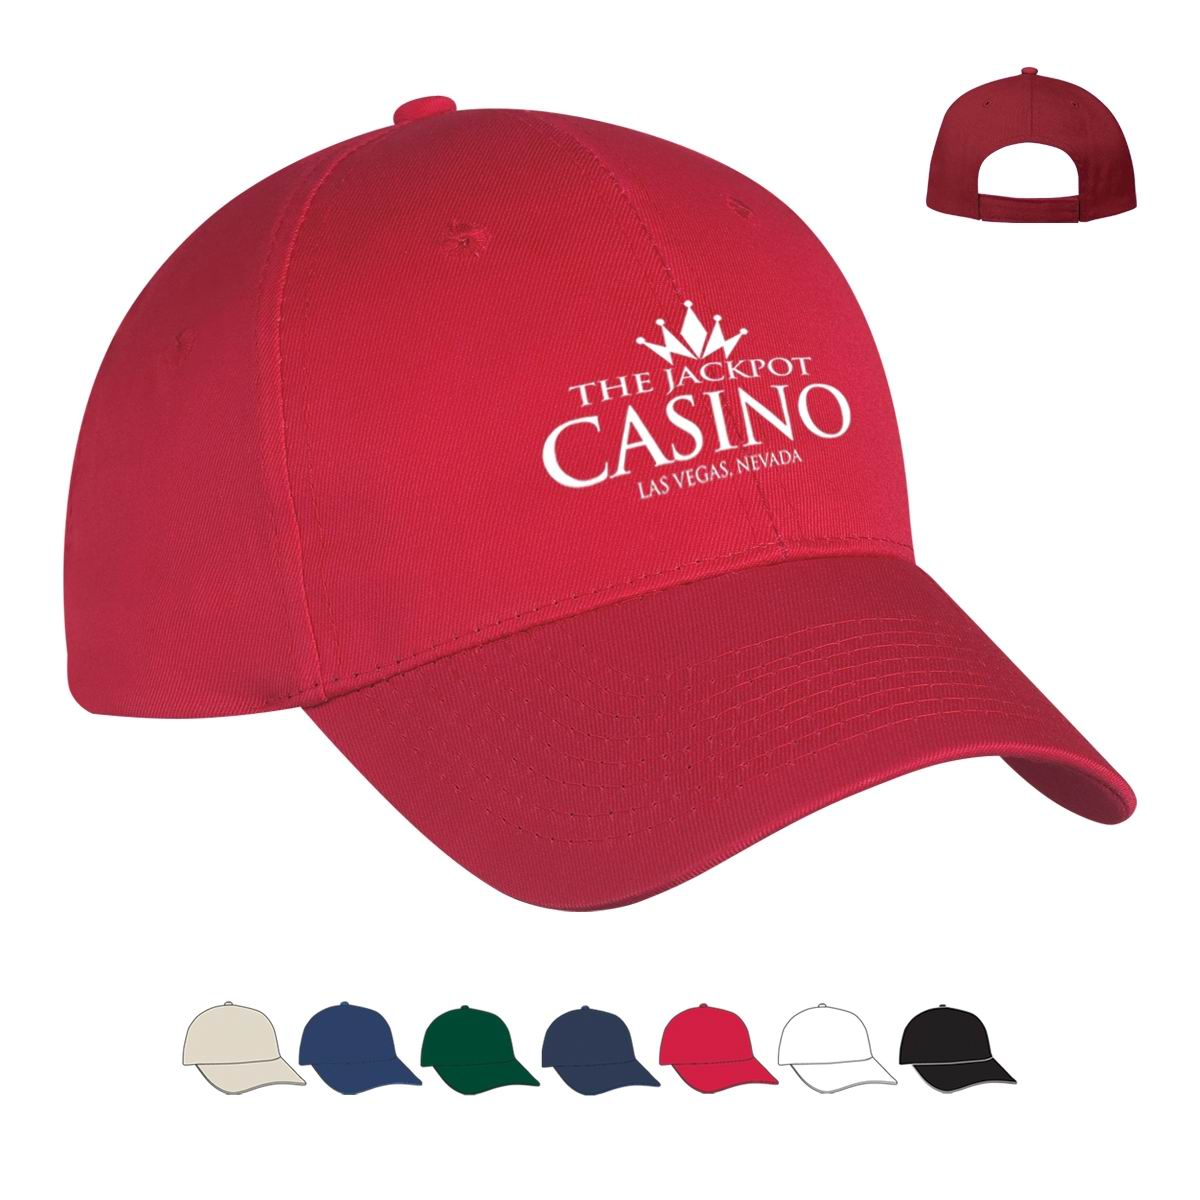 Casino 6 panel polyester cap